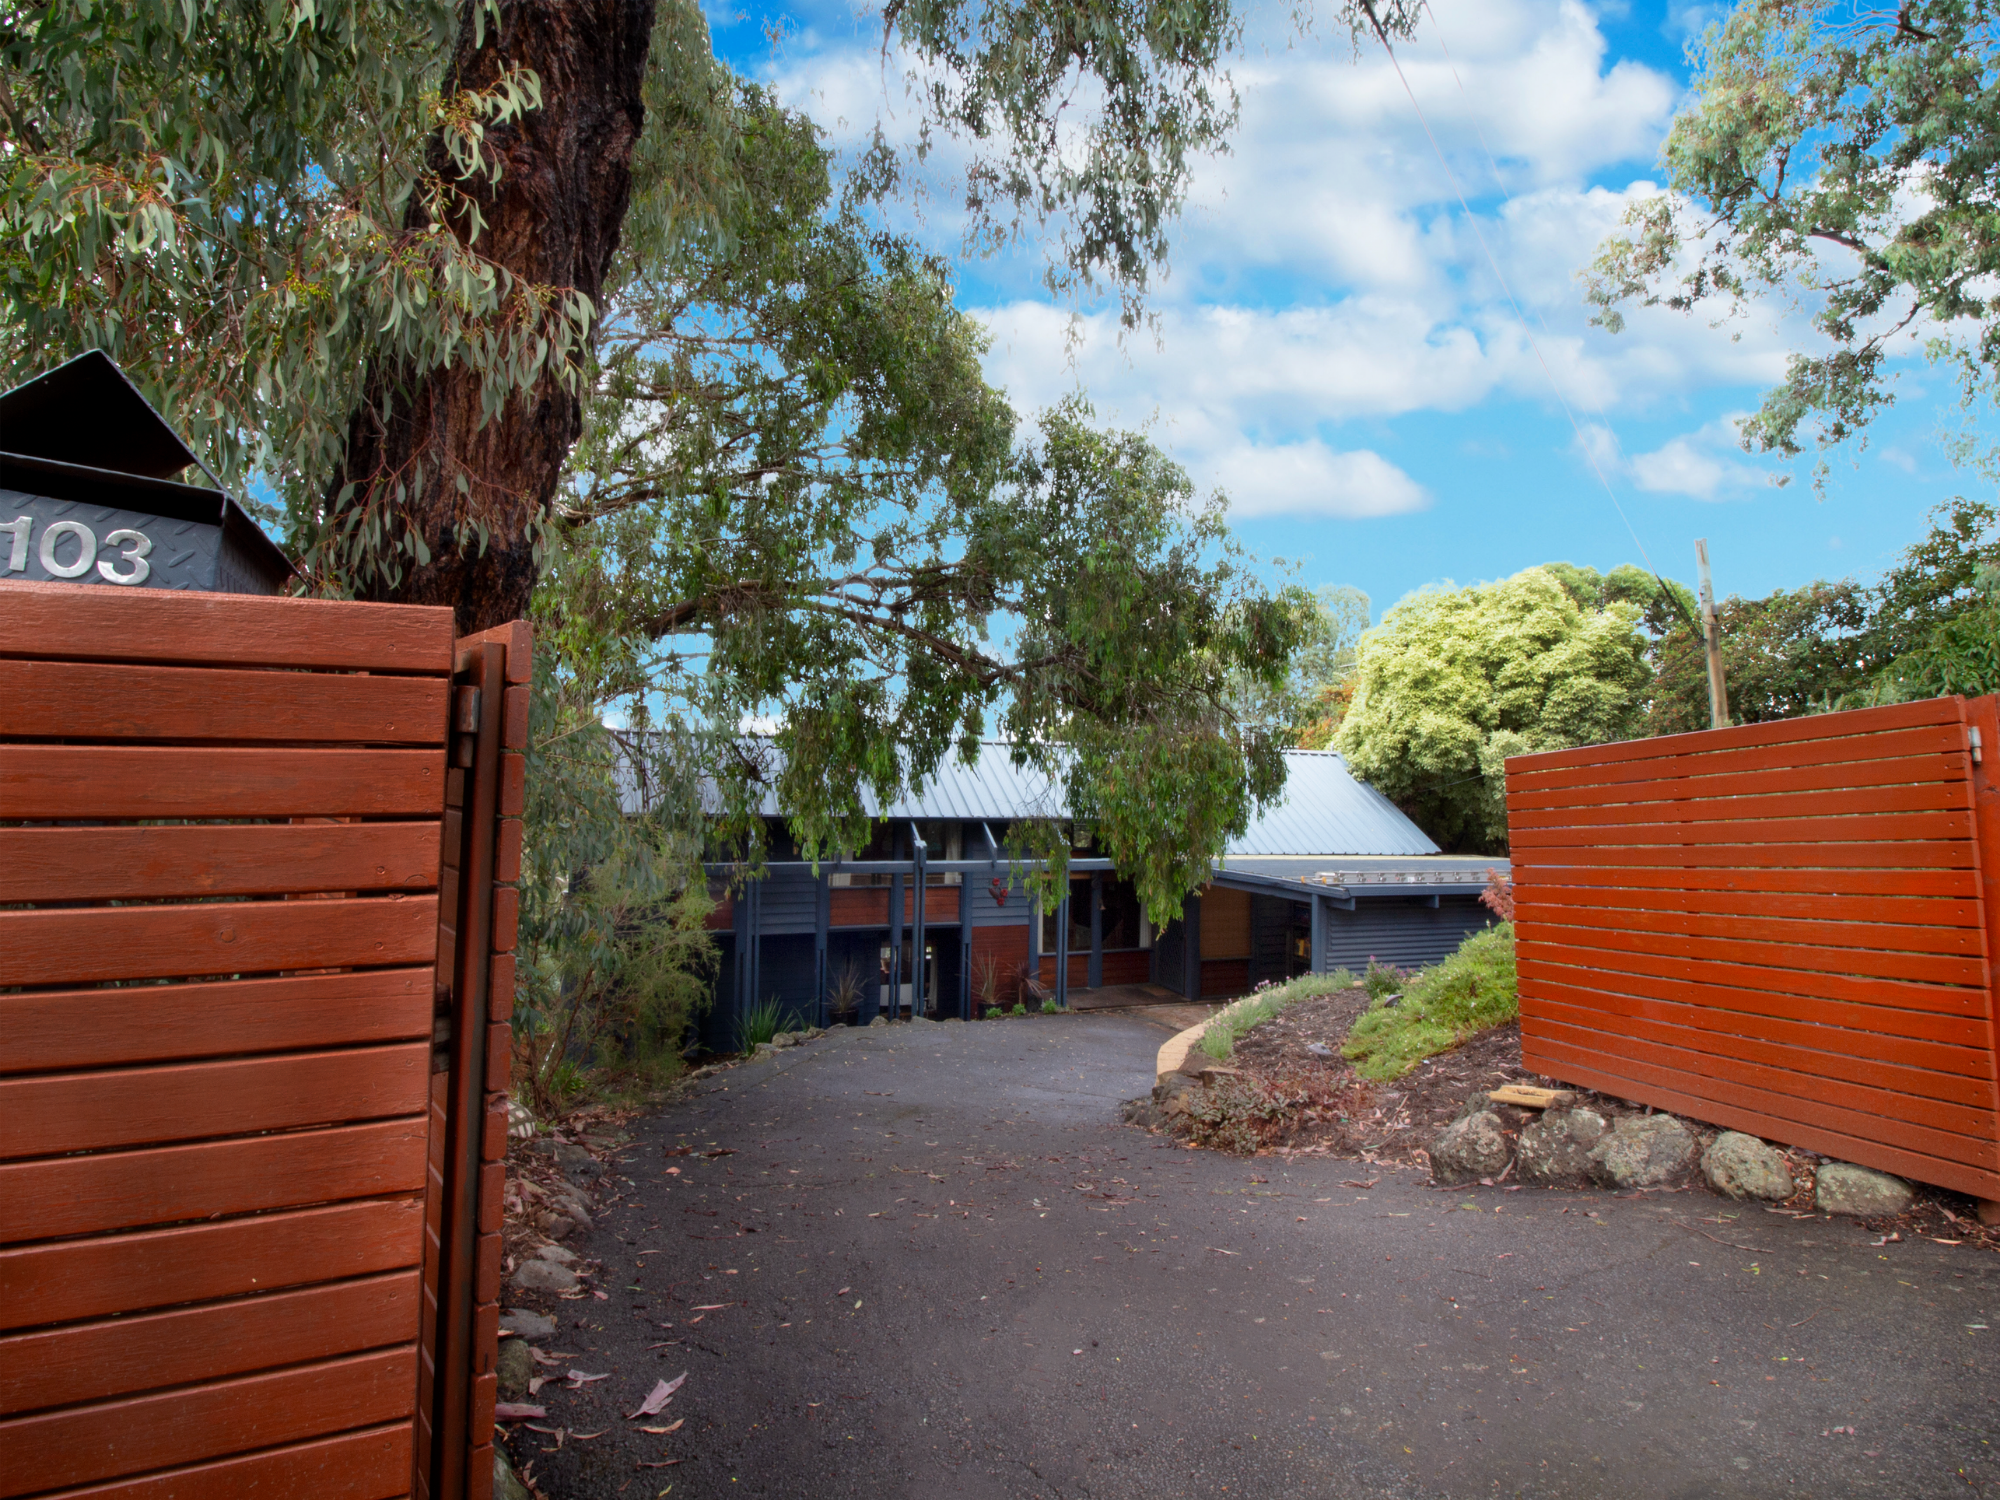 103 Seebeck Road, Rowville, VIC 3178